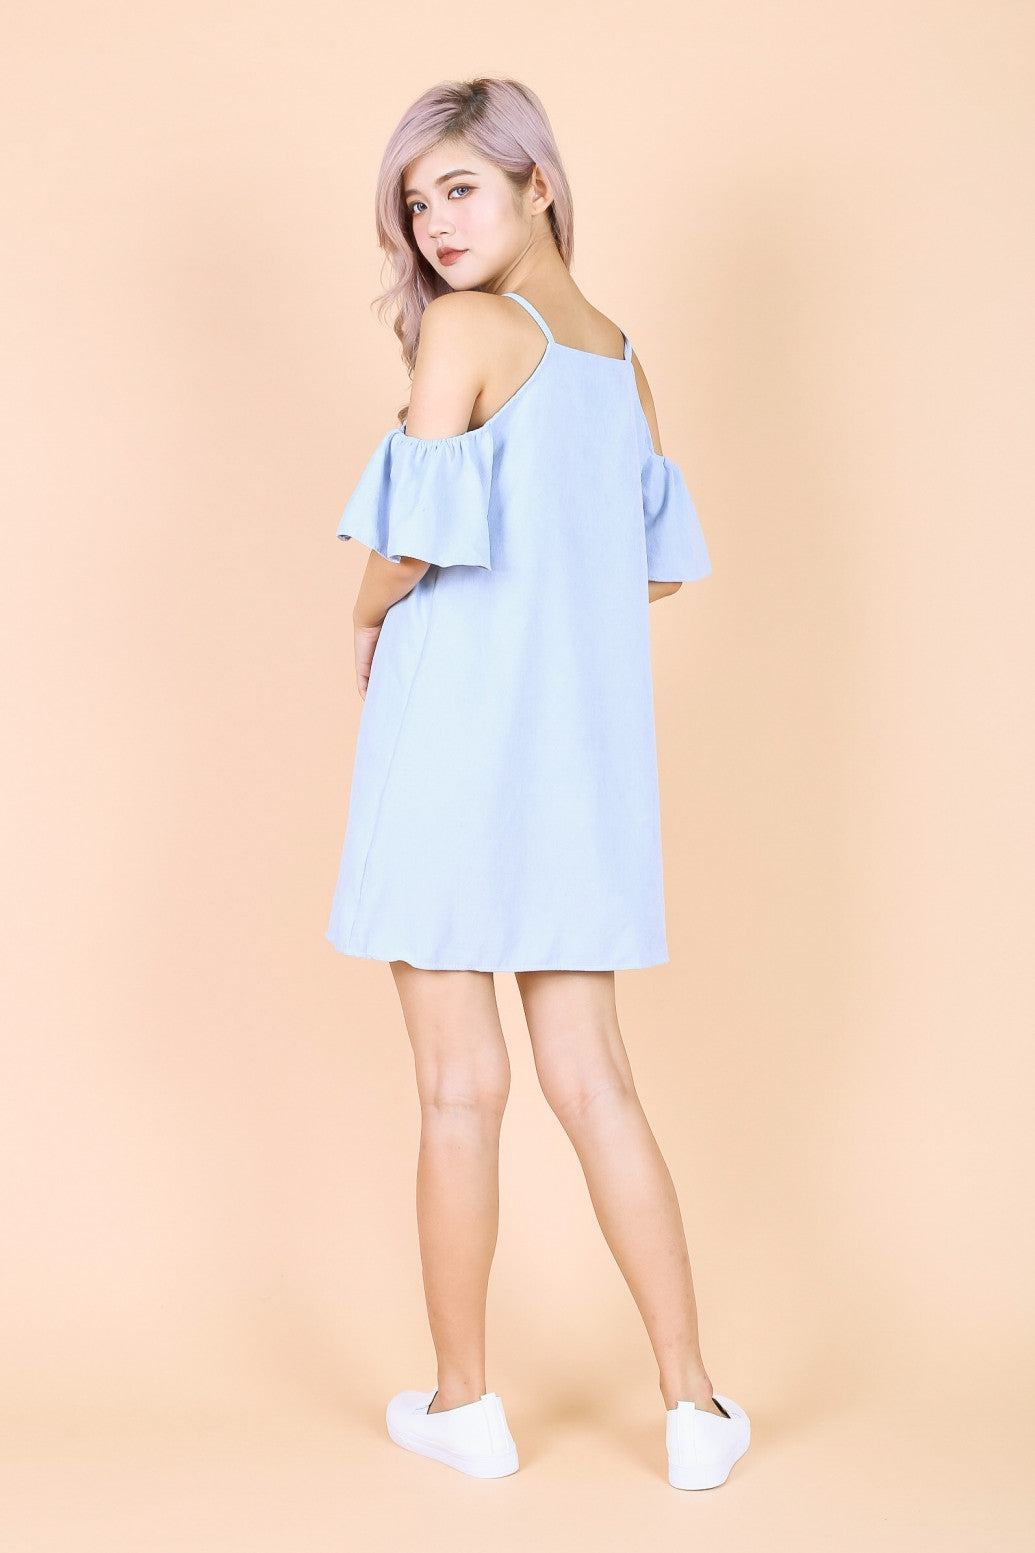 ARIELE FLUTTER COLD SHOULDER DRESS IN BABY BLUE - TOPAZETTE